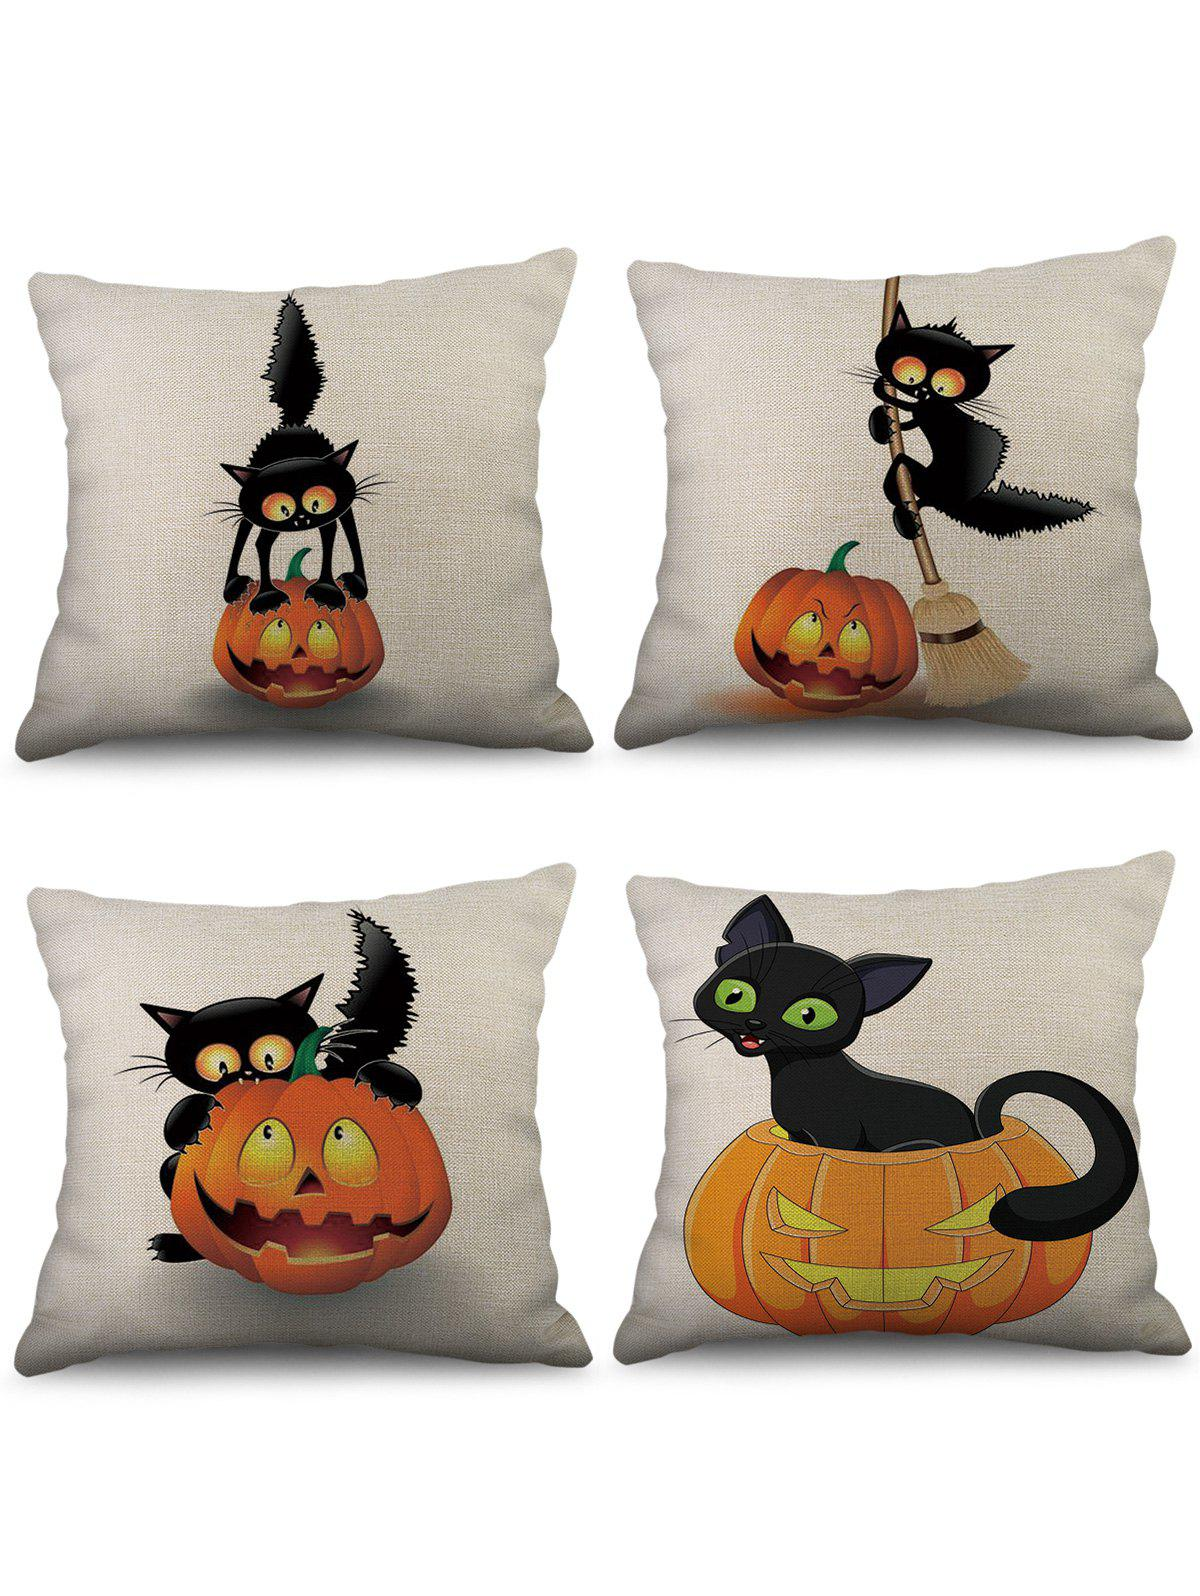 Chic 4 Pcs Halloween Pumpkin Cat Print Linen Pillowcases Set